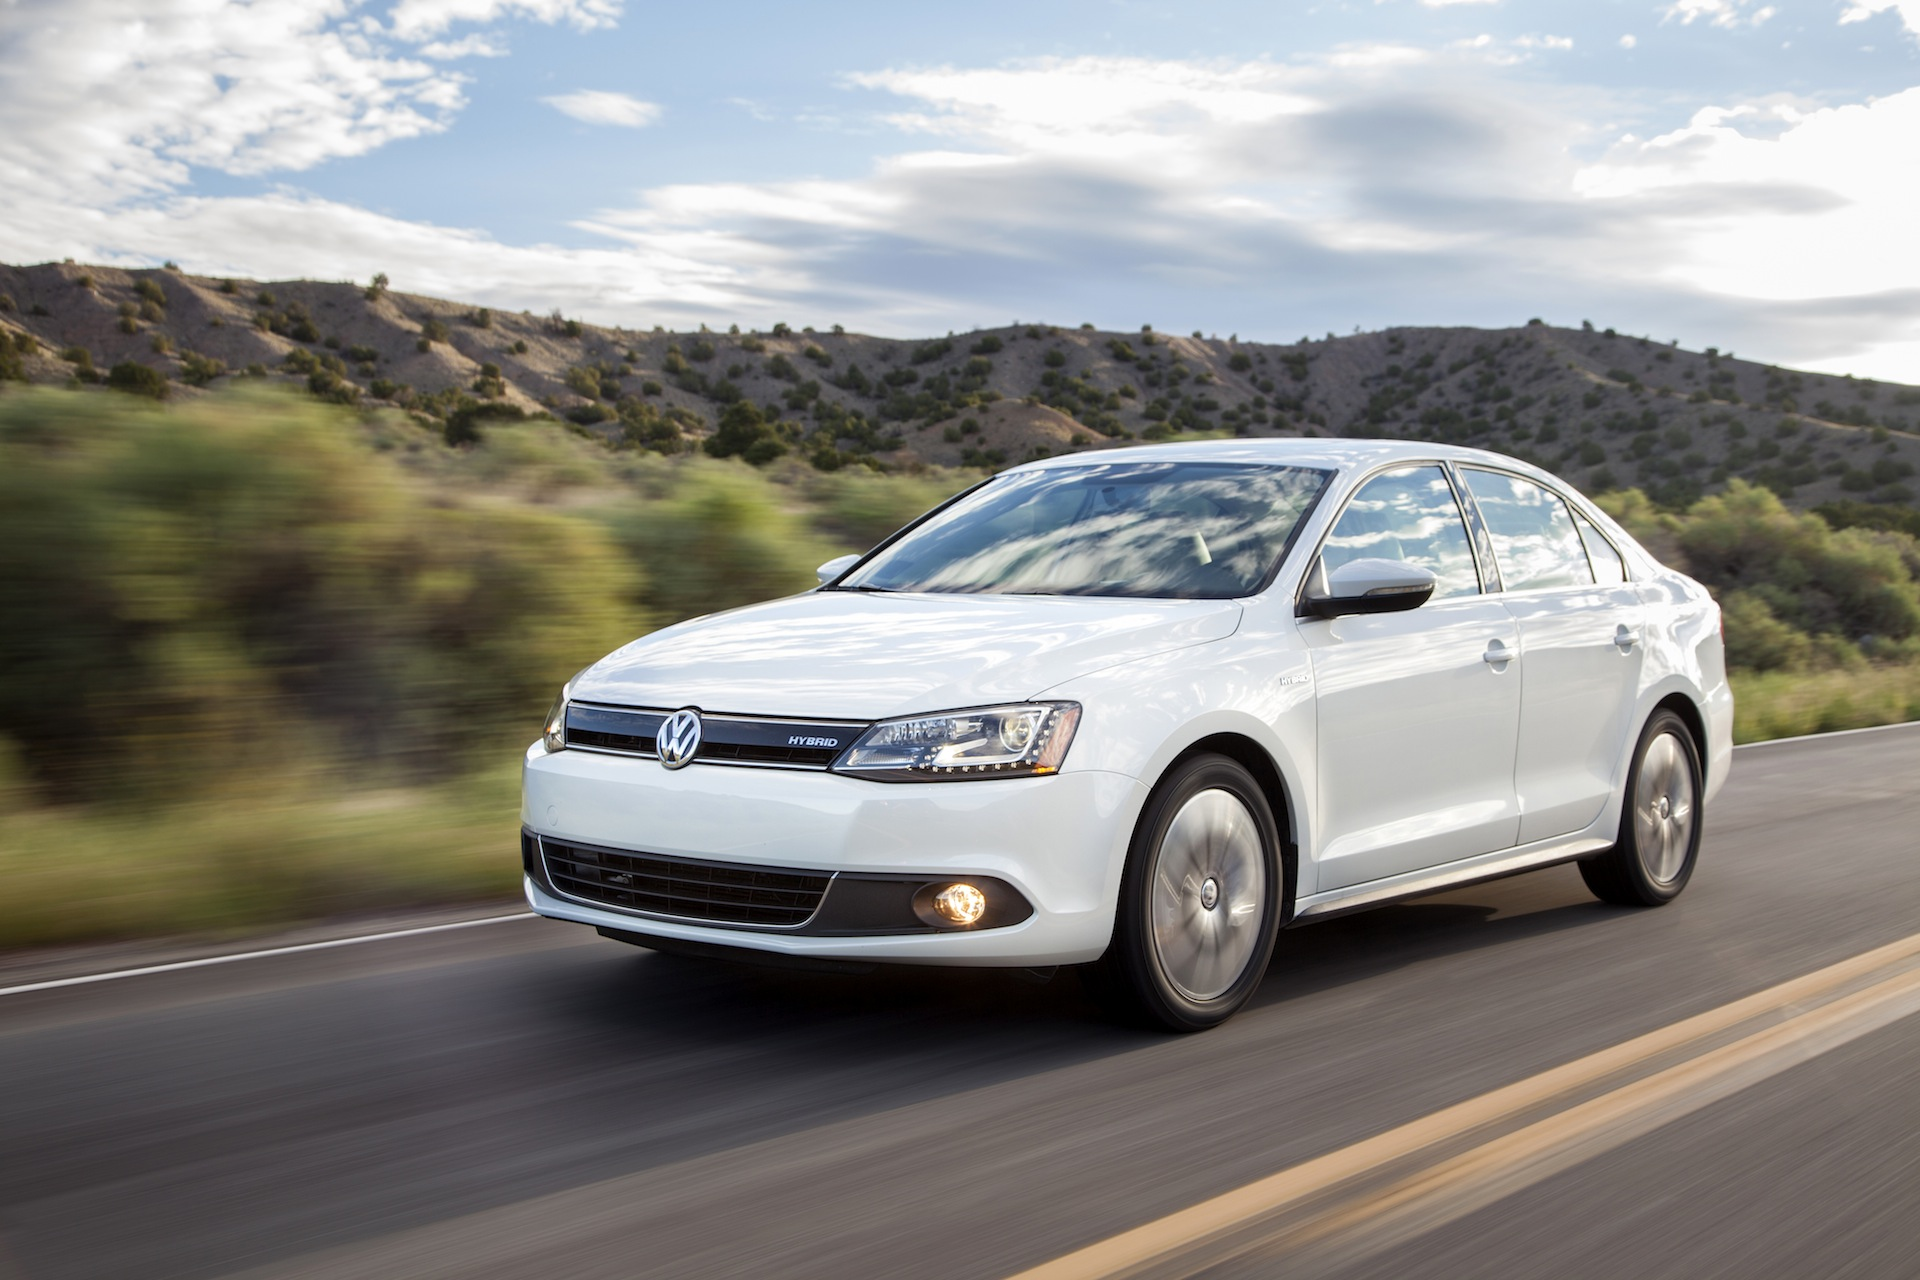 2014 Volkswagen Jetta Vw Gas Mileage The Car Connection